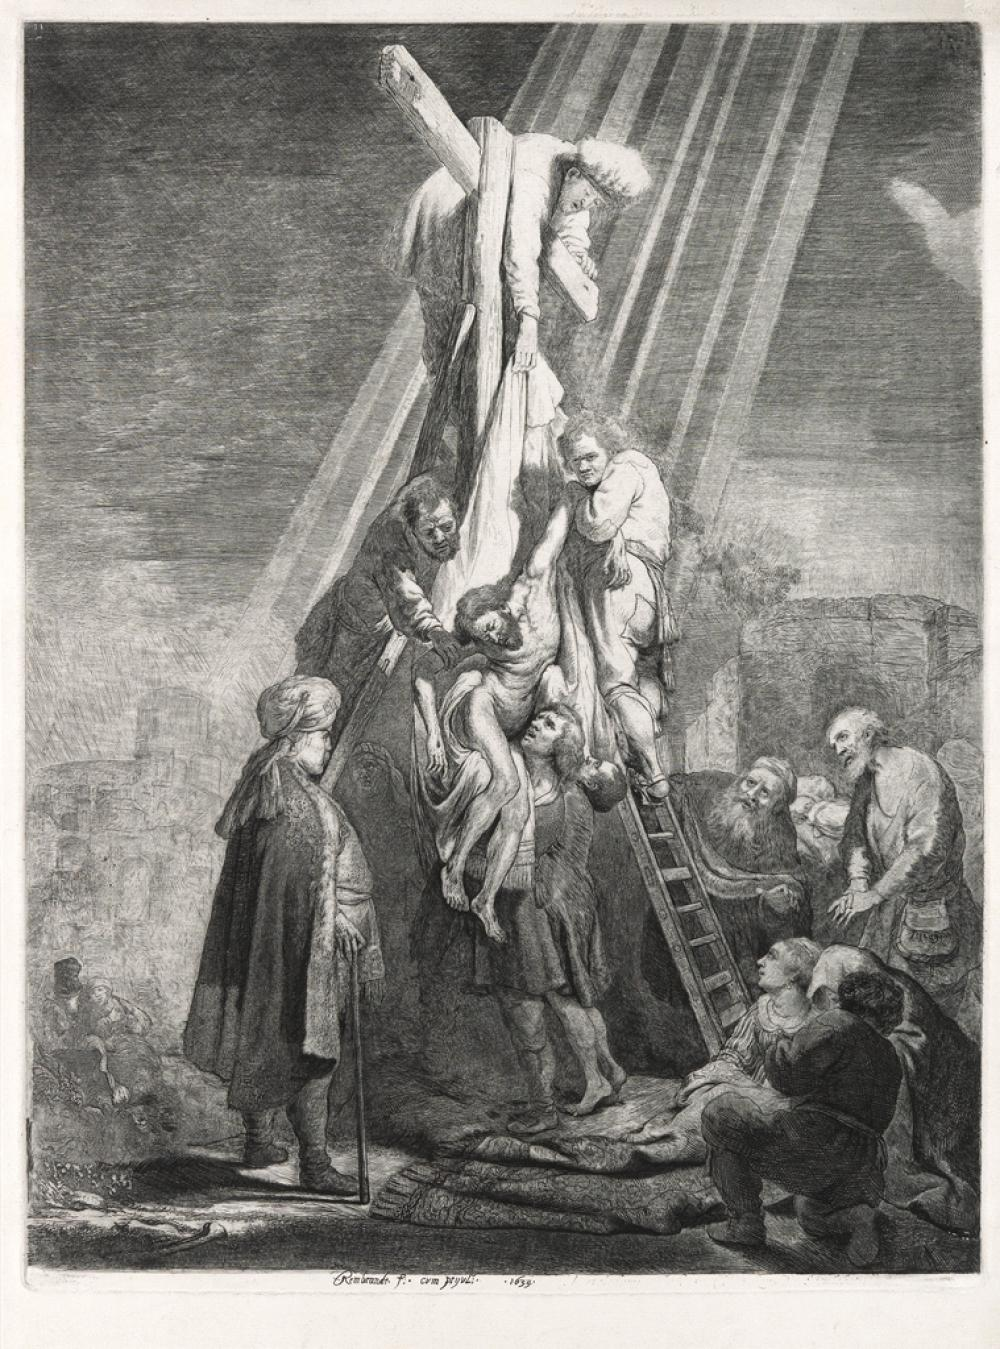 REMRBANDT VAN RIJN The Descent From the Cross: Second Plate.